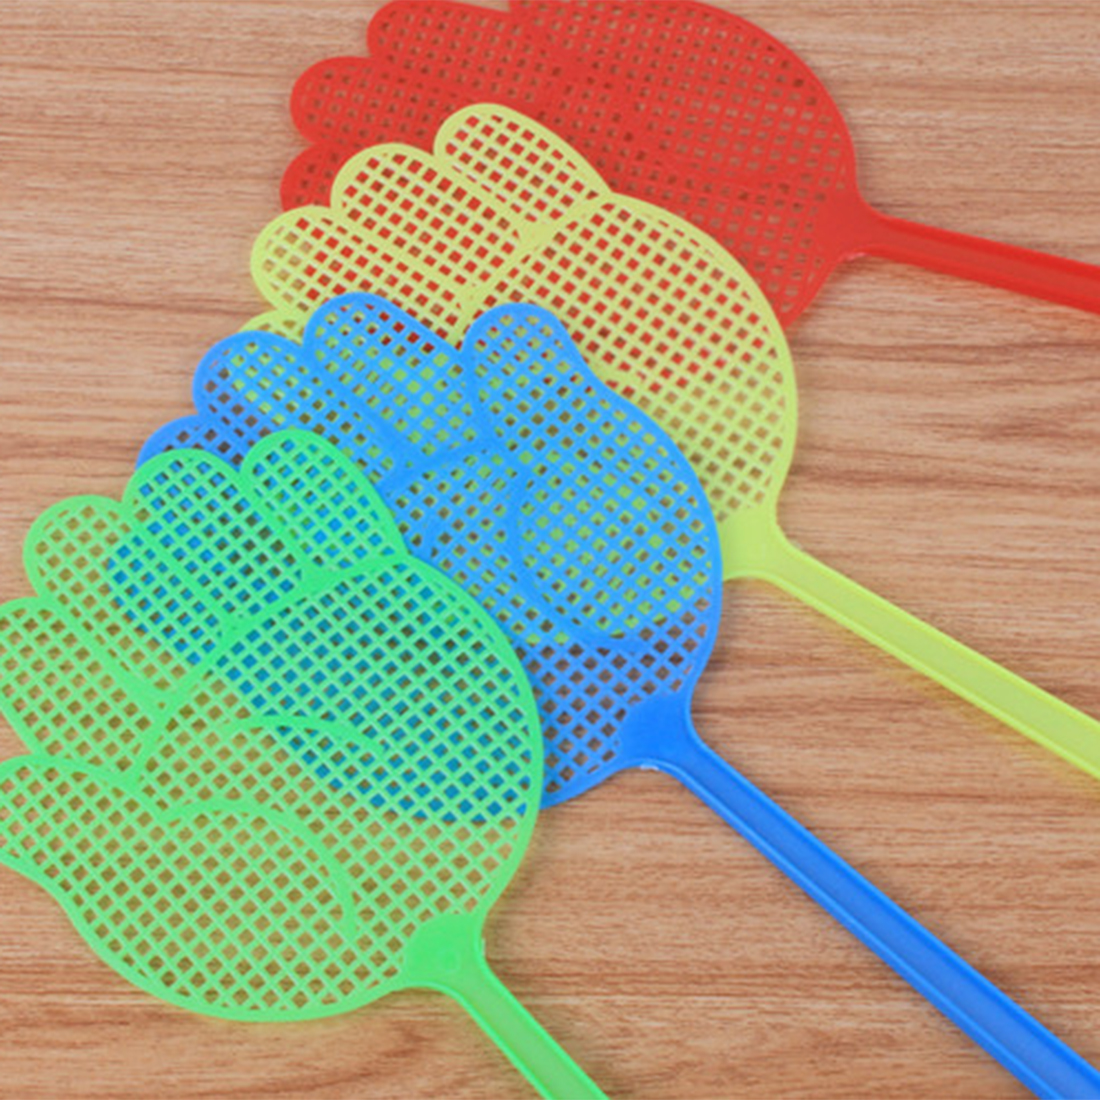 Hot 10Pcs Cute Palm Pattern Plastic Fly Swatter Lightweight Household Flapper Mosquito Bug Zapper Pest Control Color Random